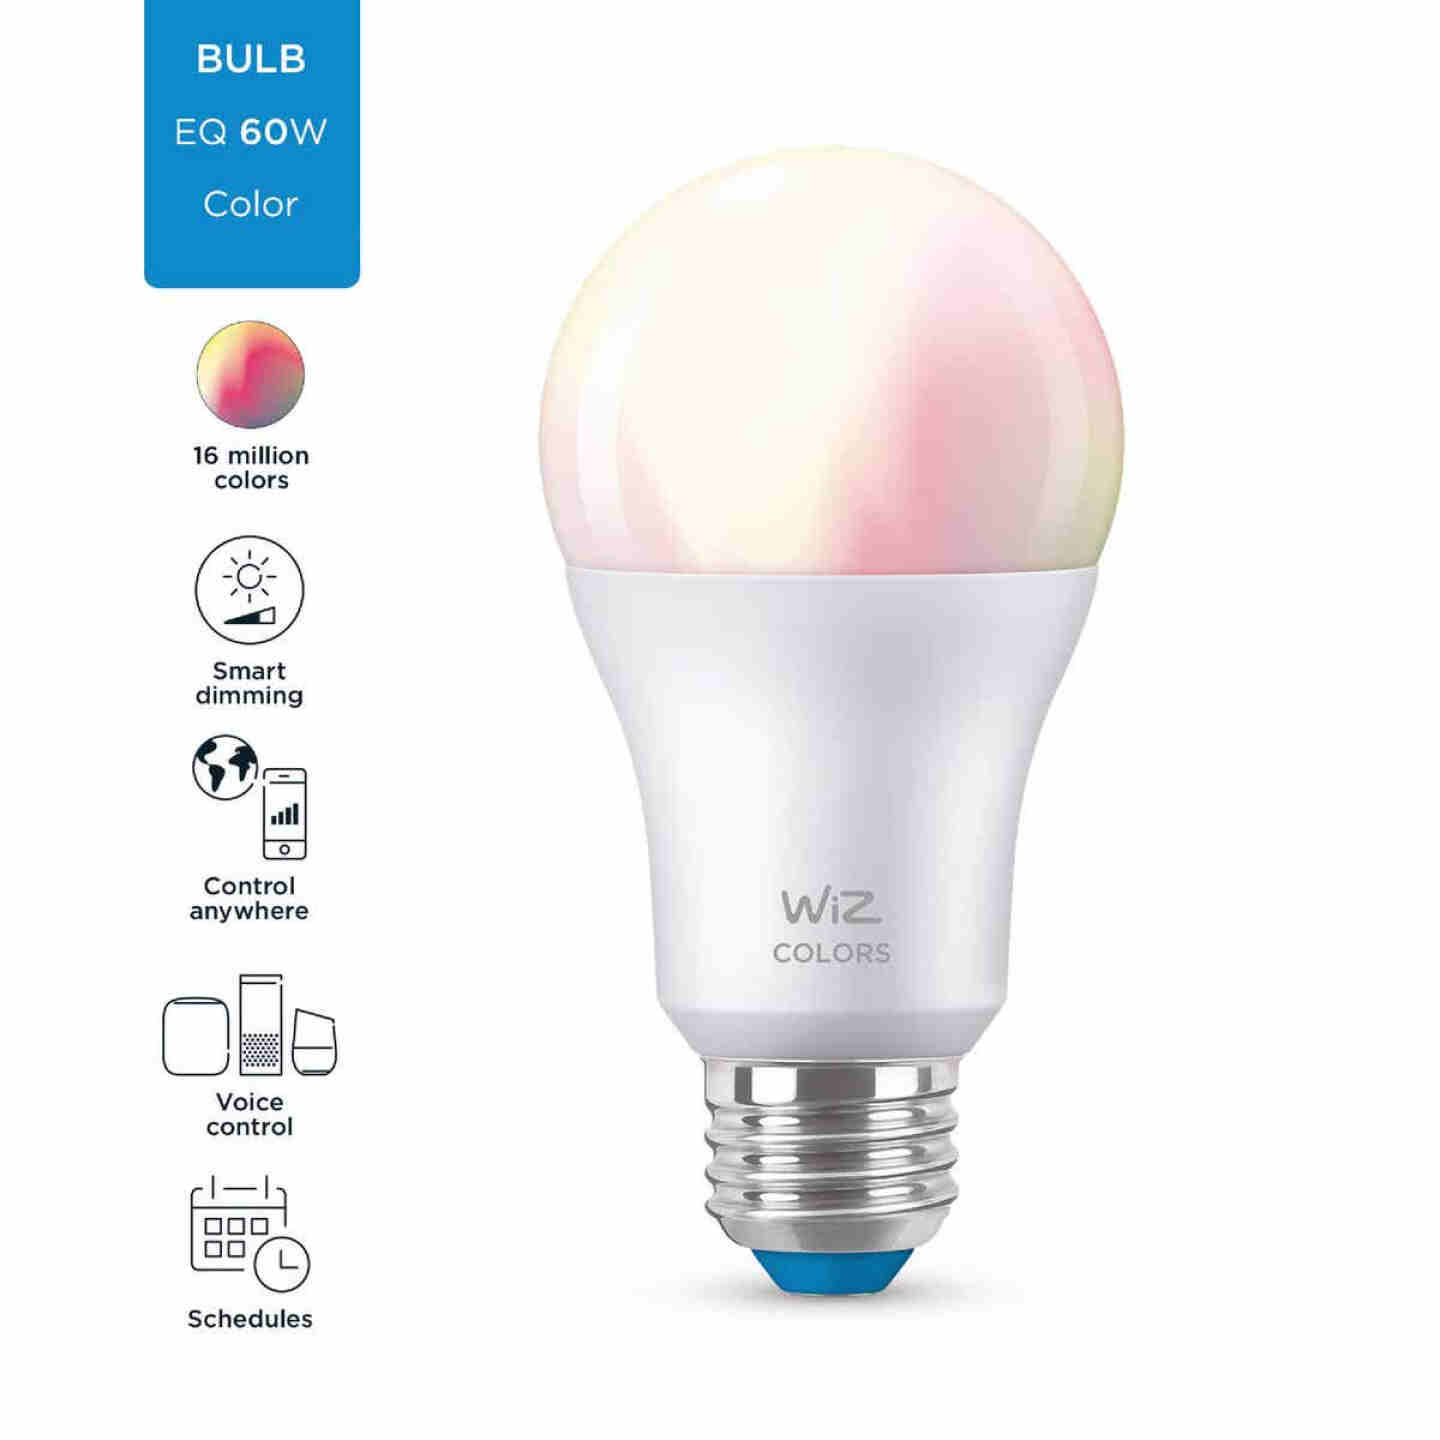 Wiz 60W Equivalent Color Changing A19 Medium Dimmable Smart LED Light Bulb Image 3